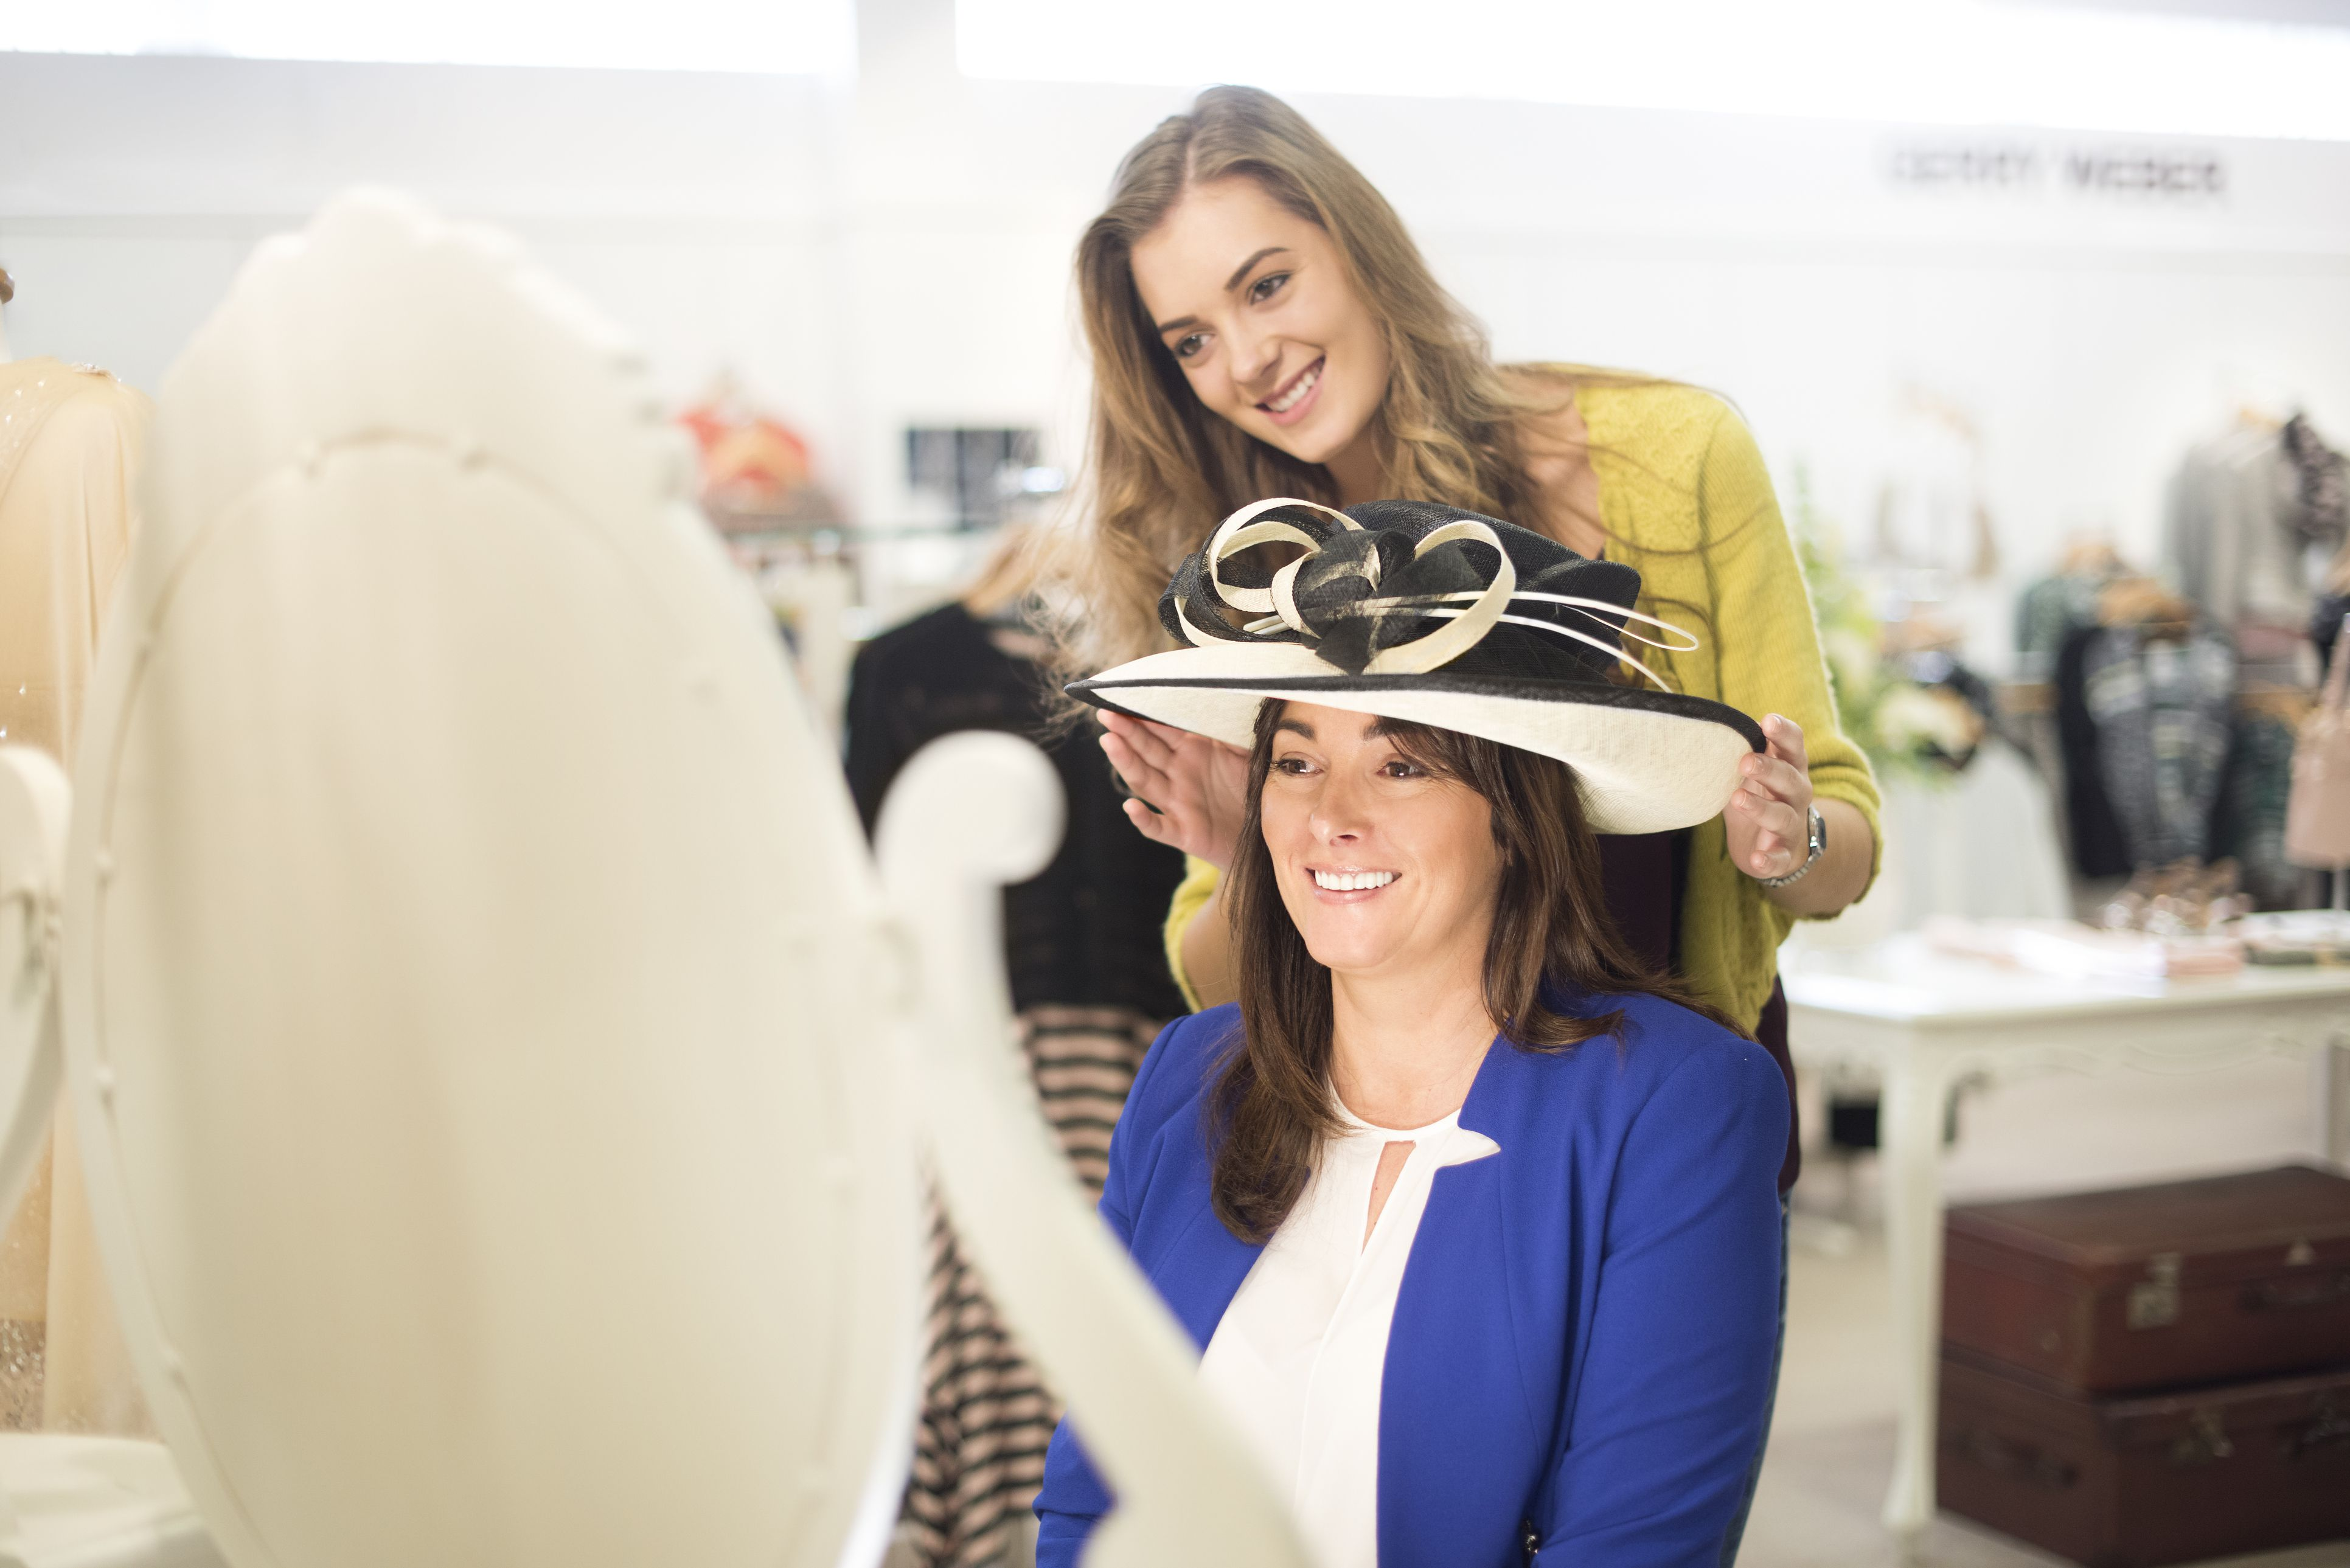 a personal shopper u0026 39 s job description